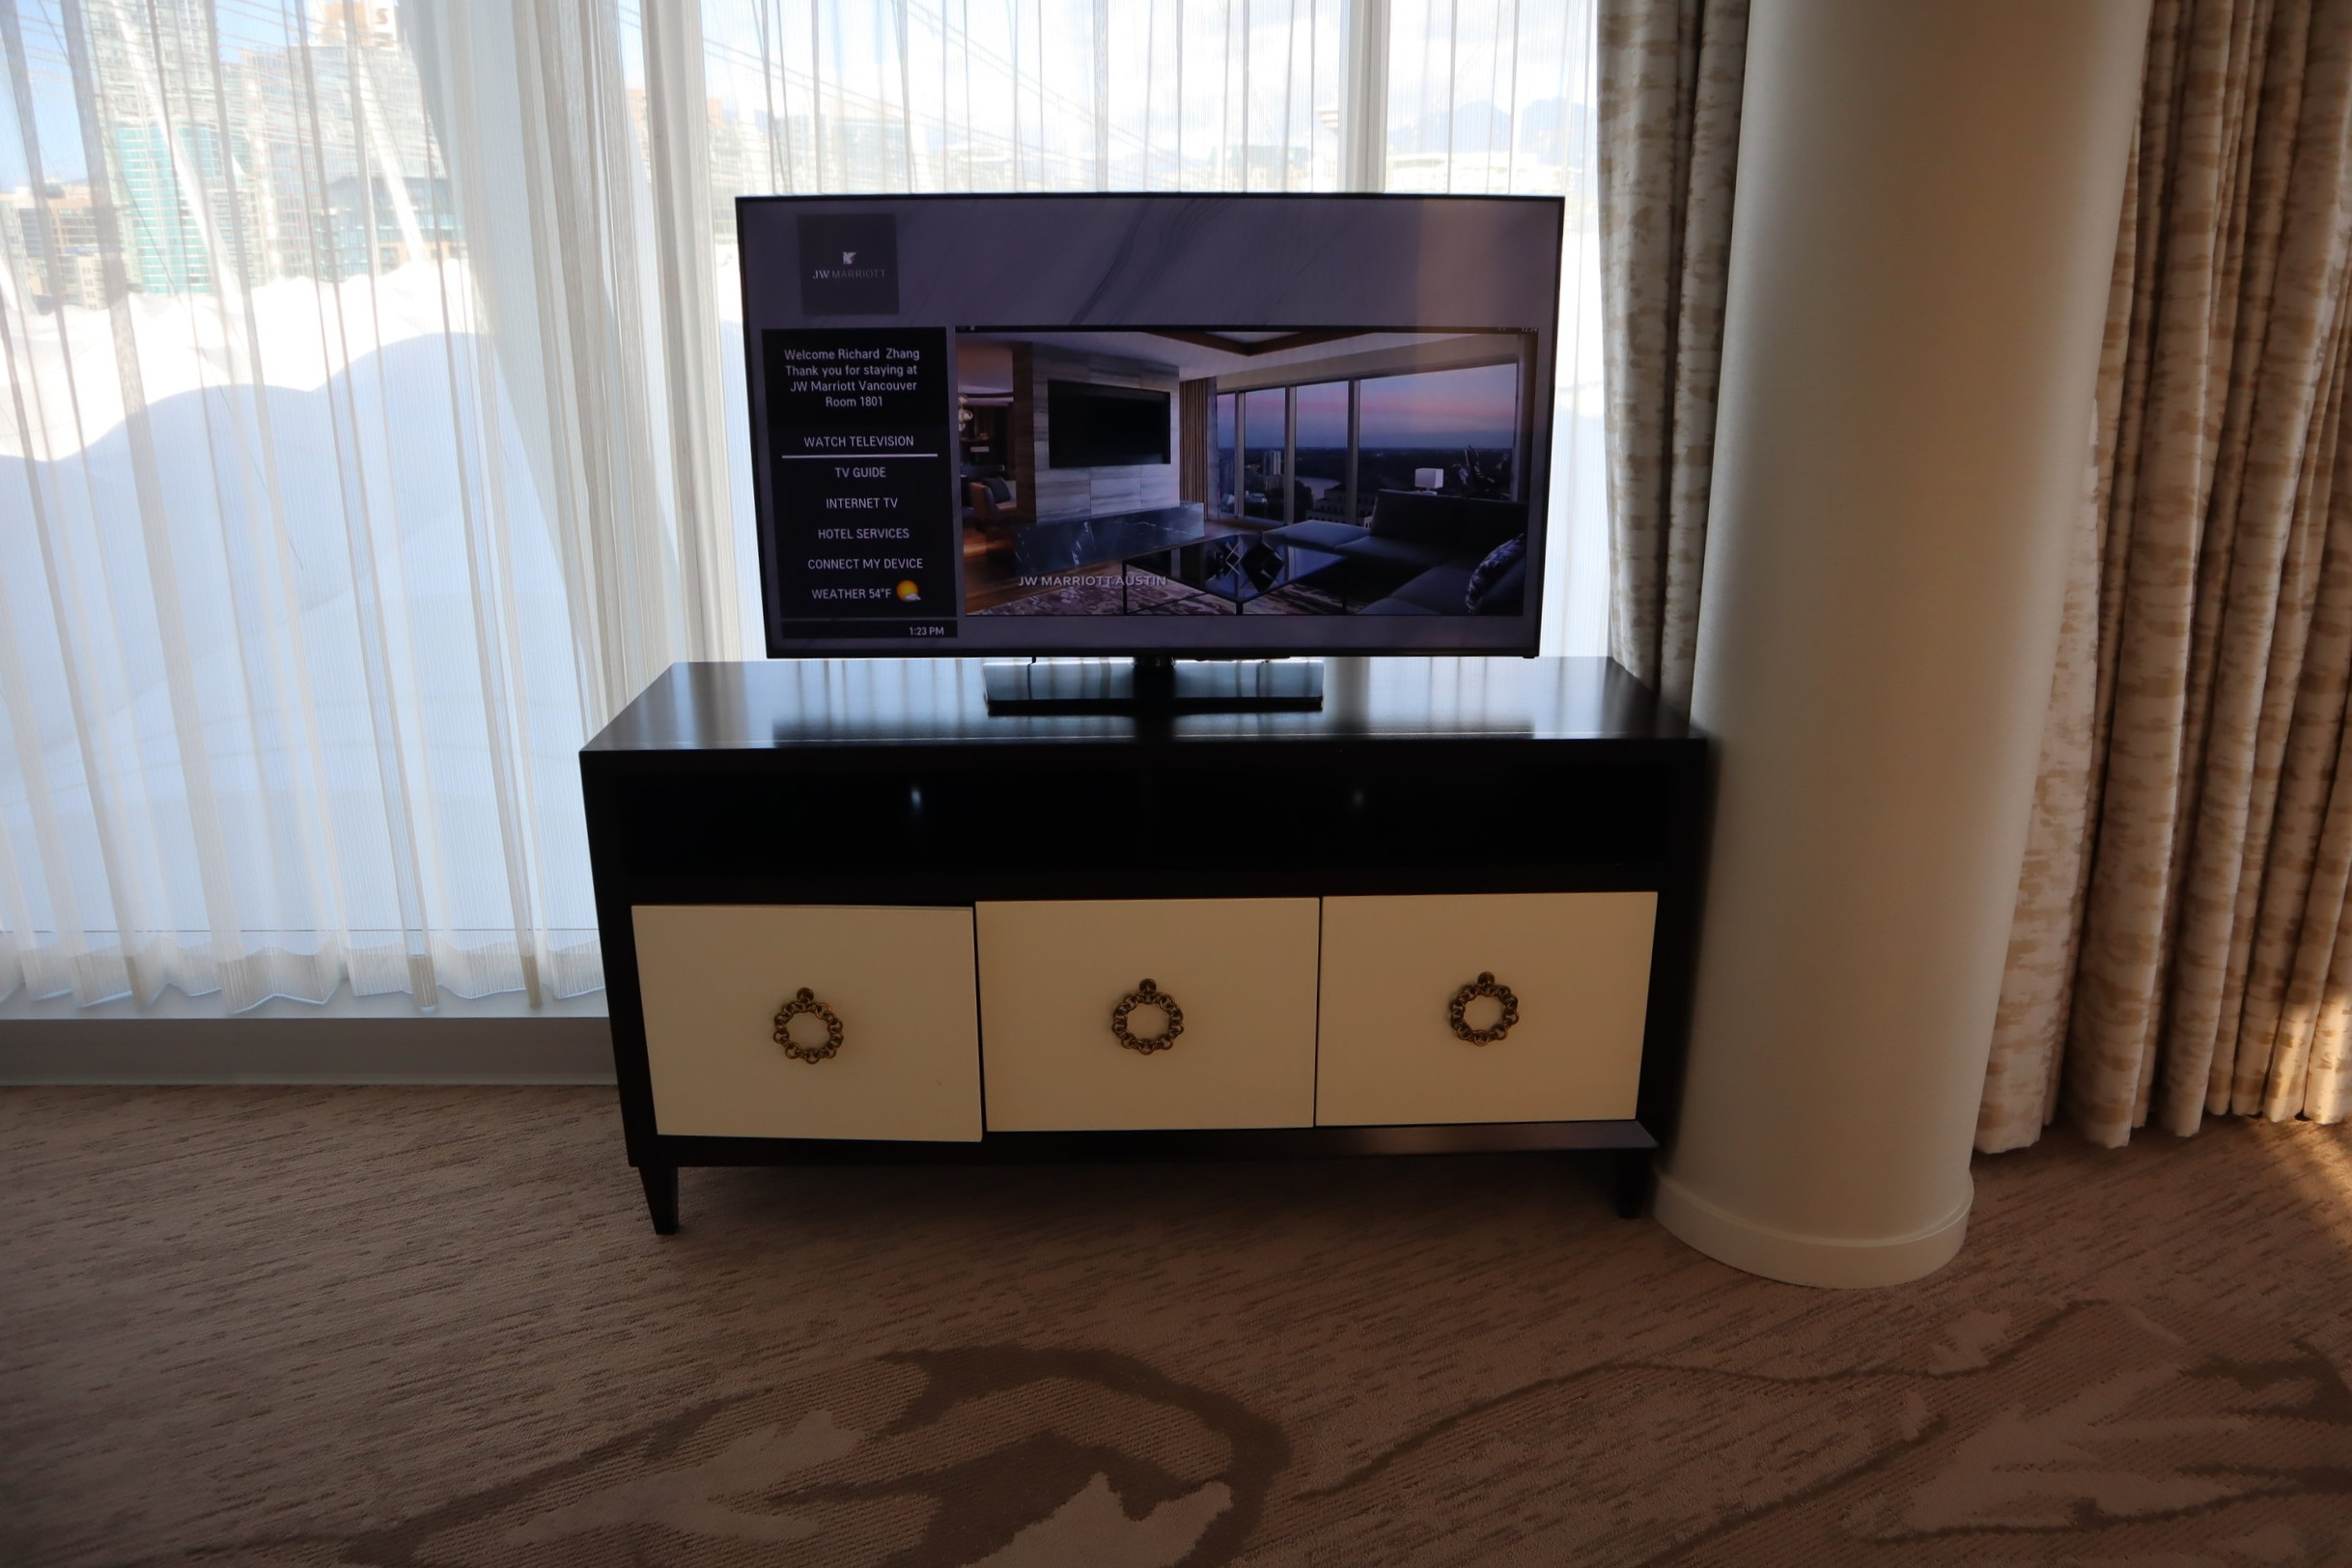 JW Marriott Parq Vancouver – Living room television